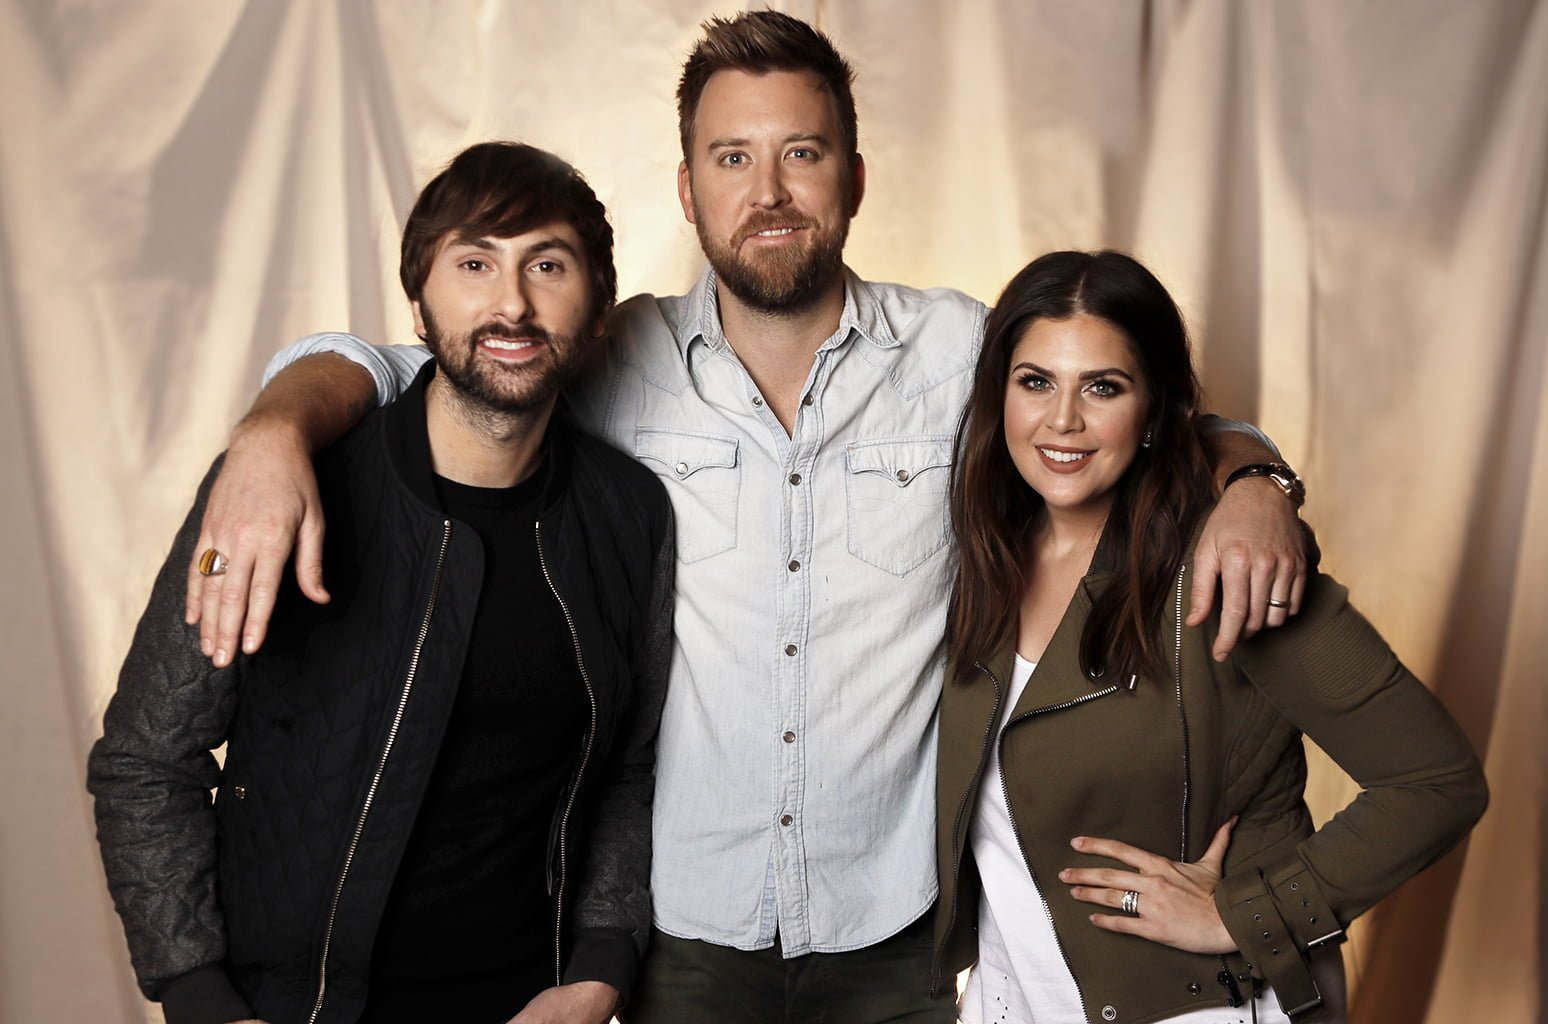 lady antebellum - photo #2